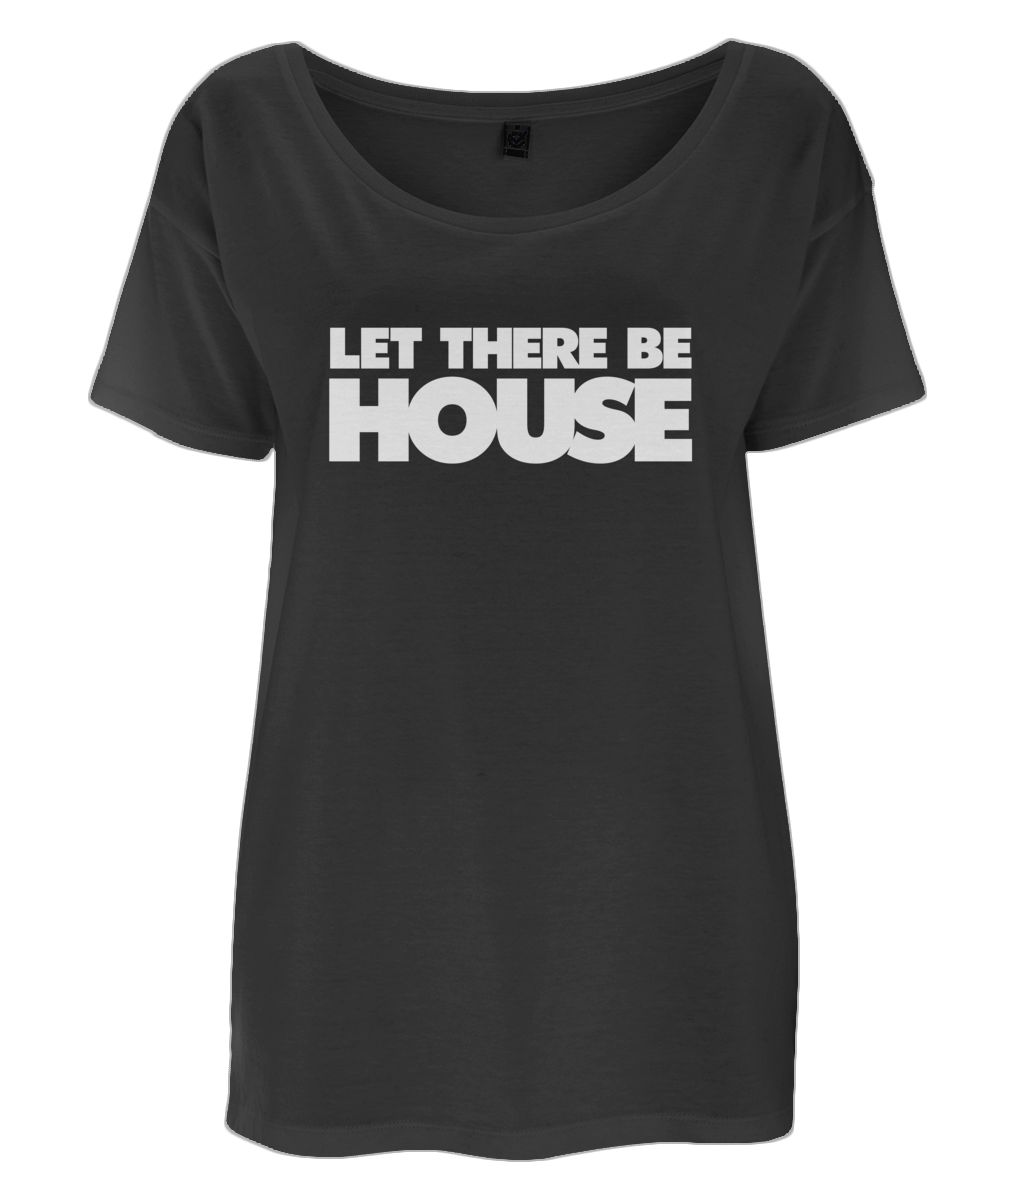 Women's Oversized T-Shirt LTBH Words